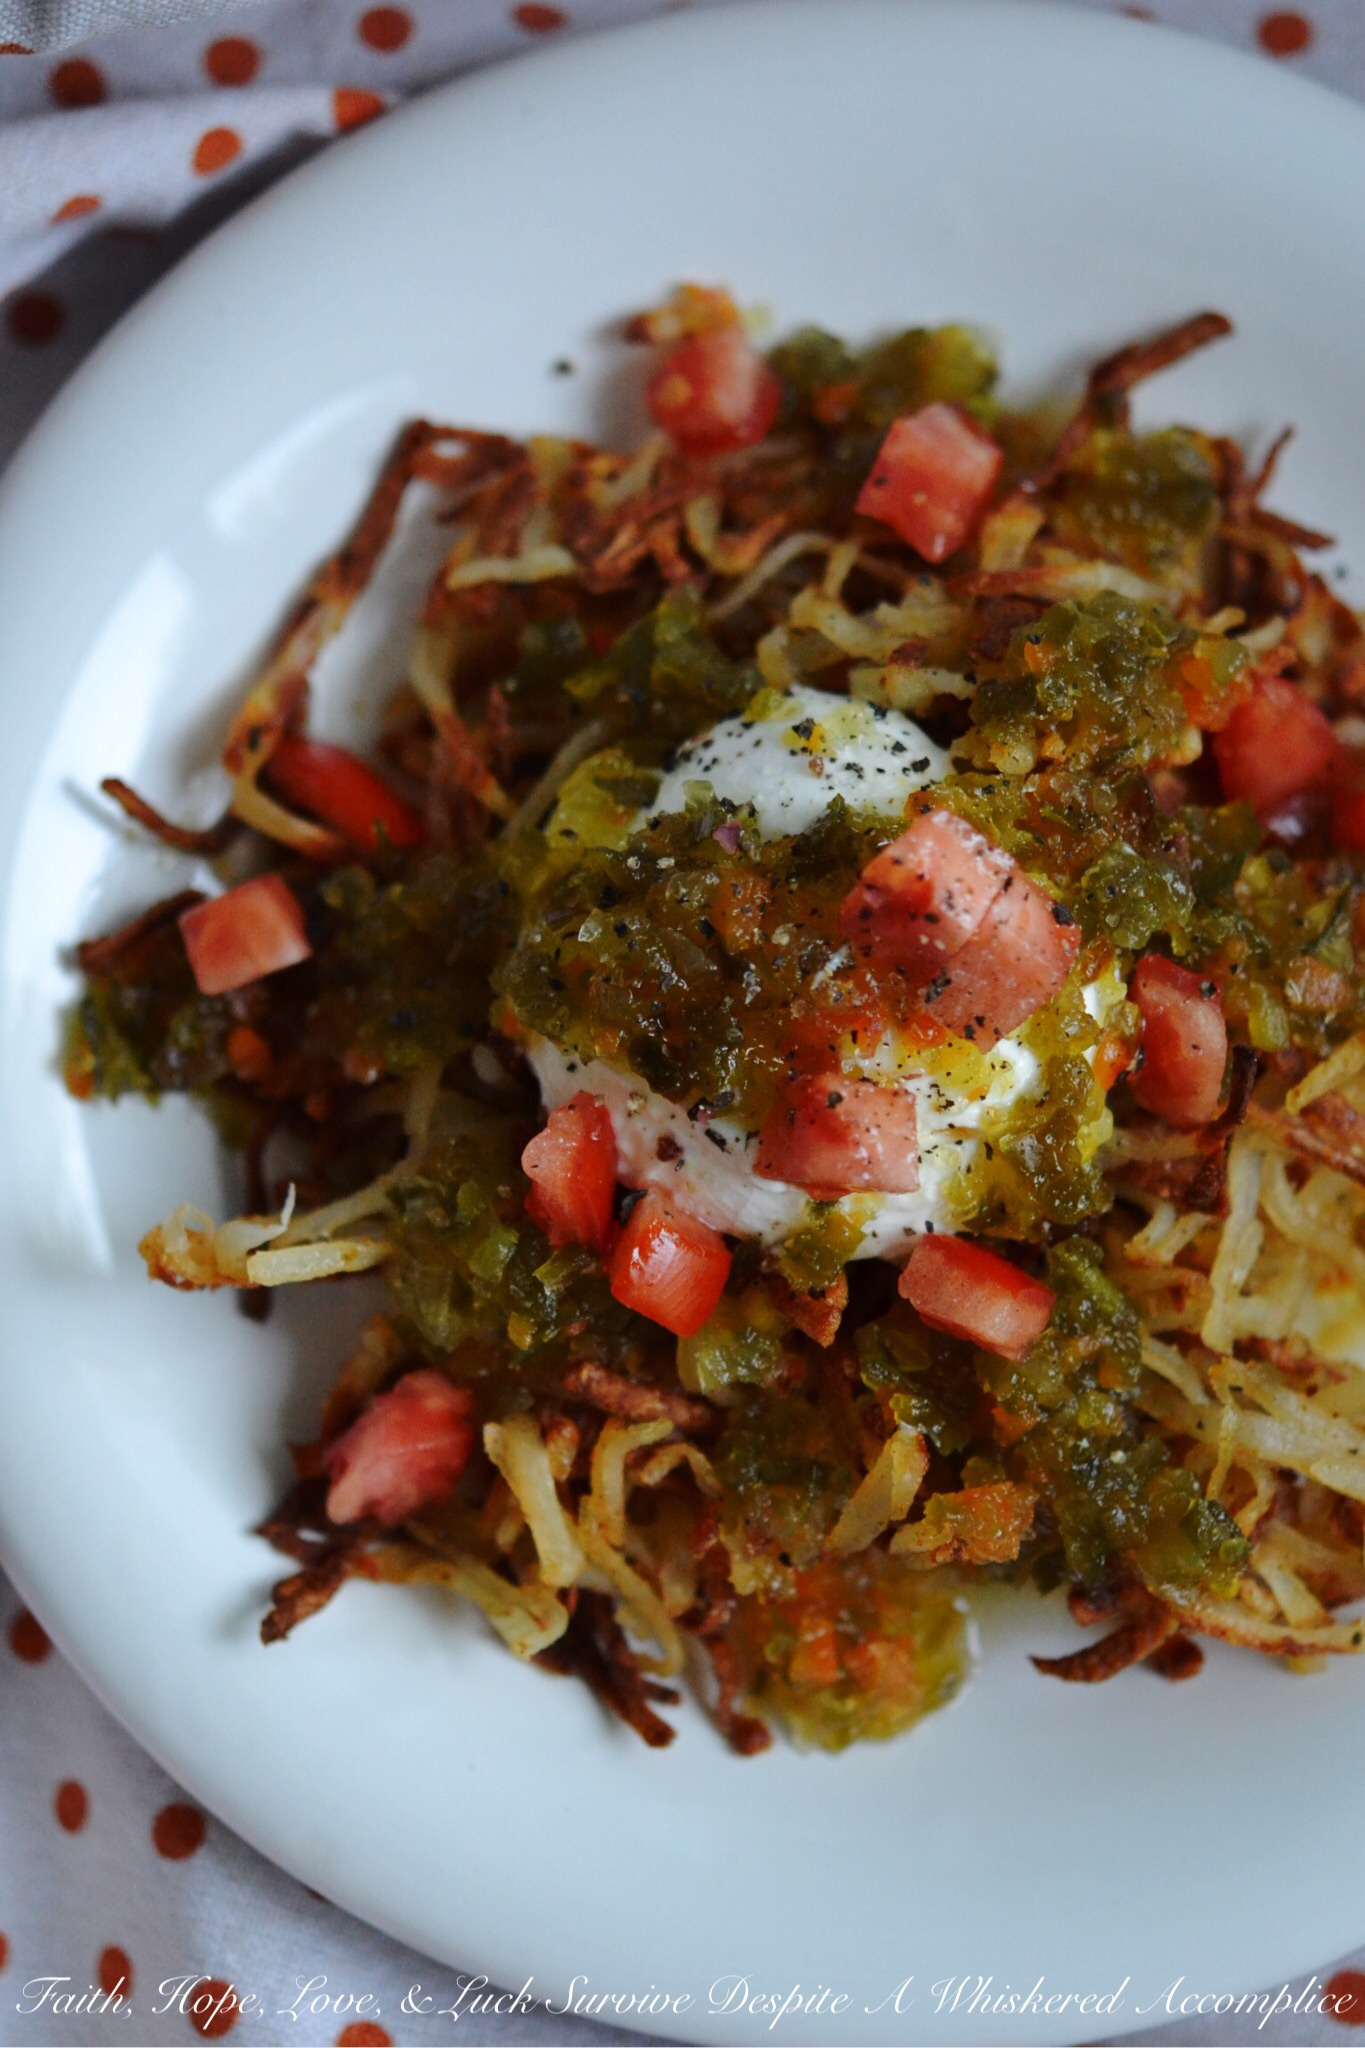 Oven-Baked Mexican Hash Browns